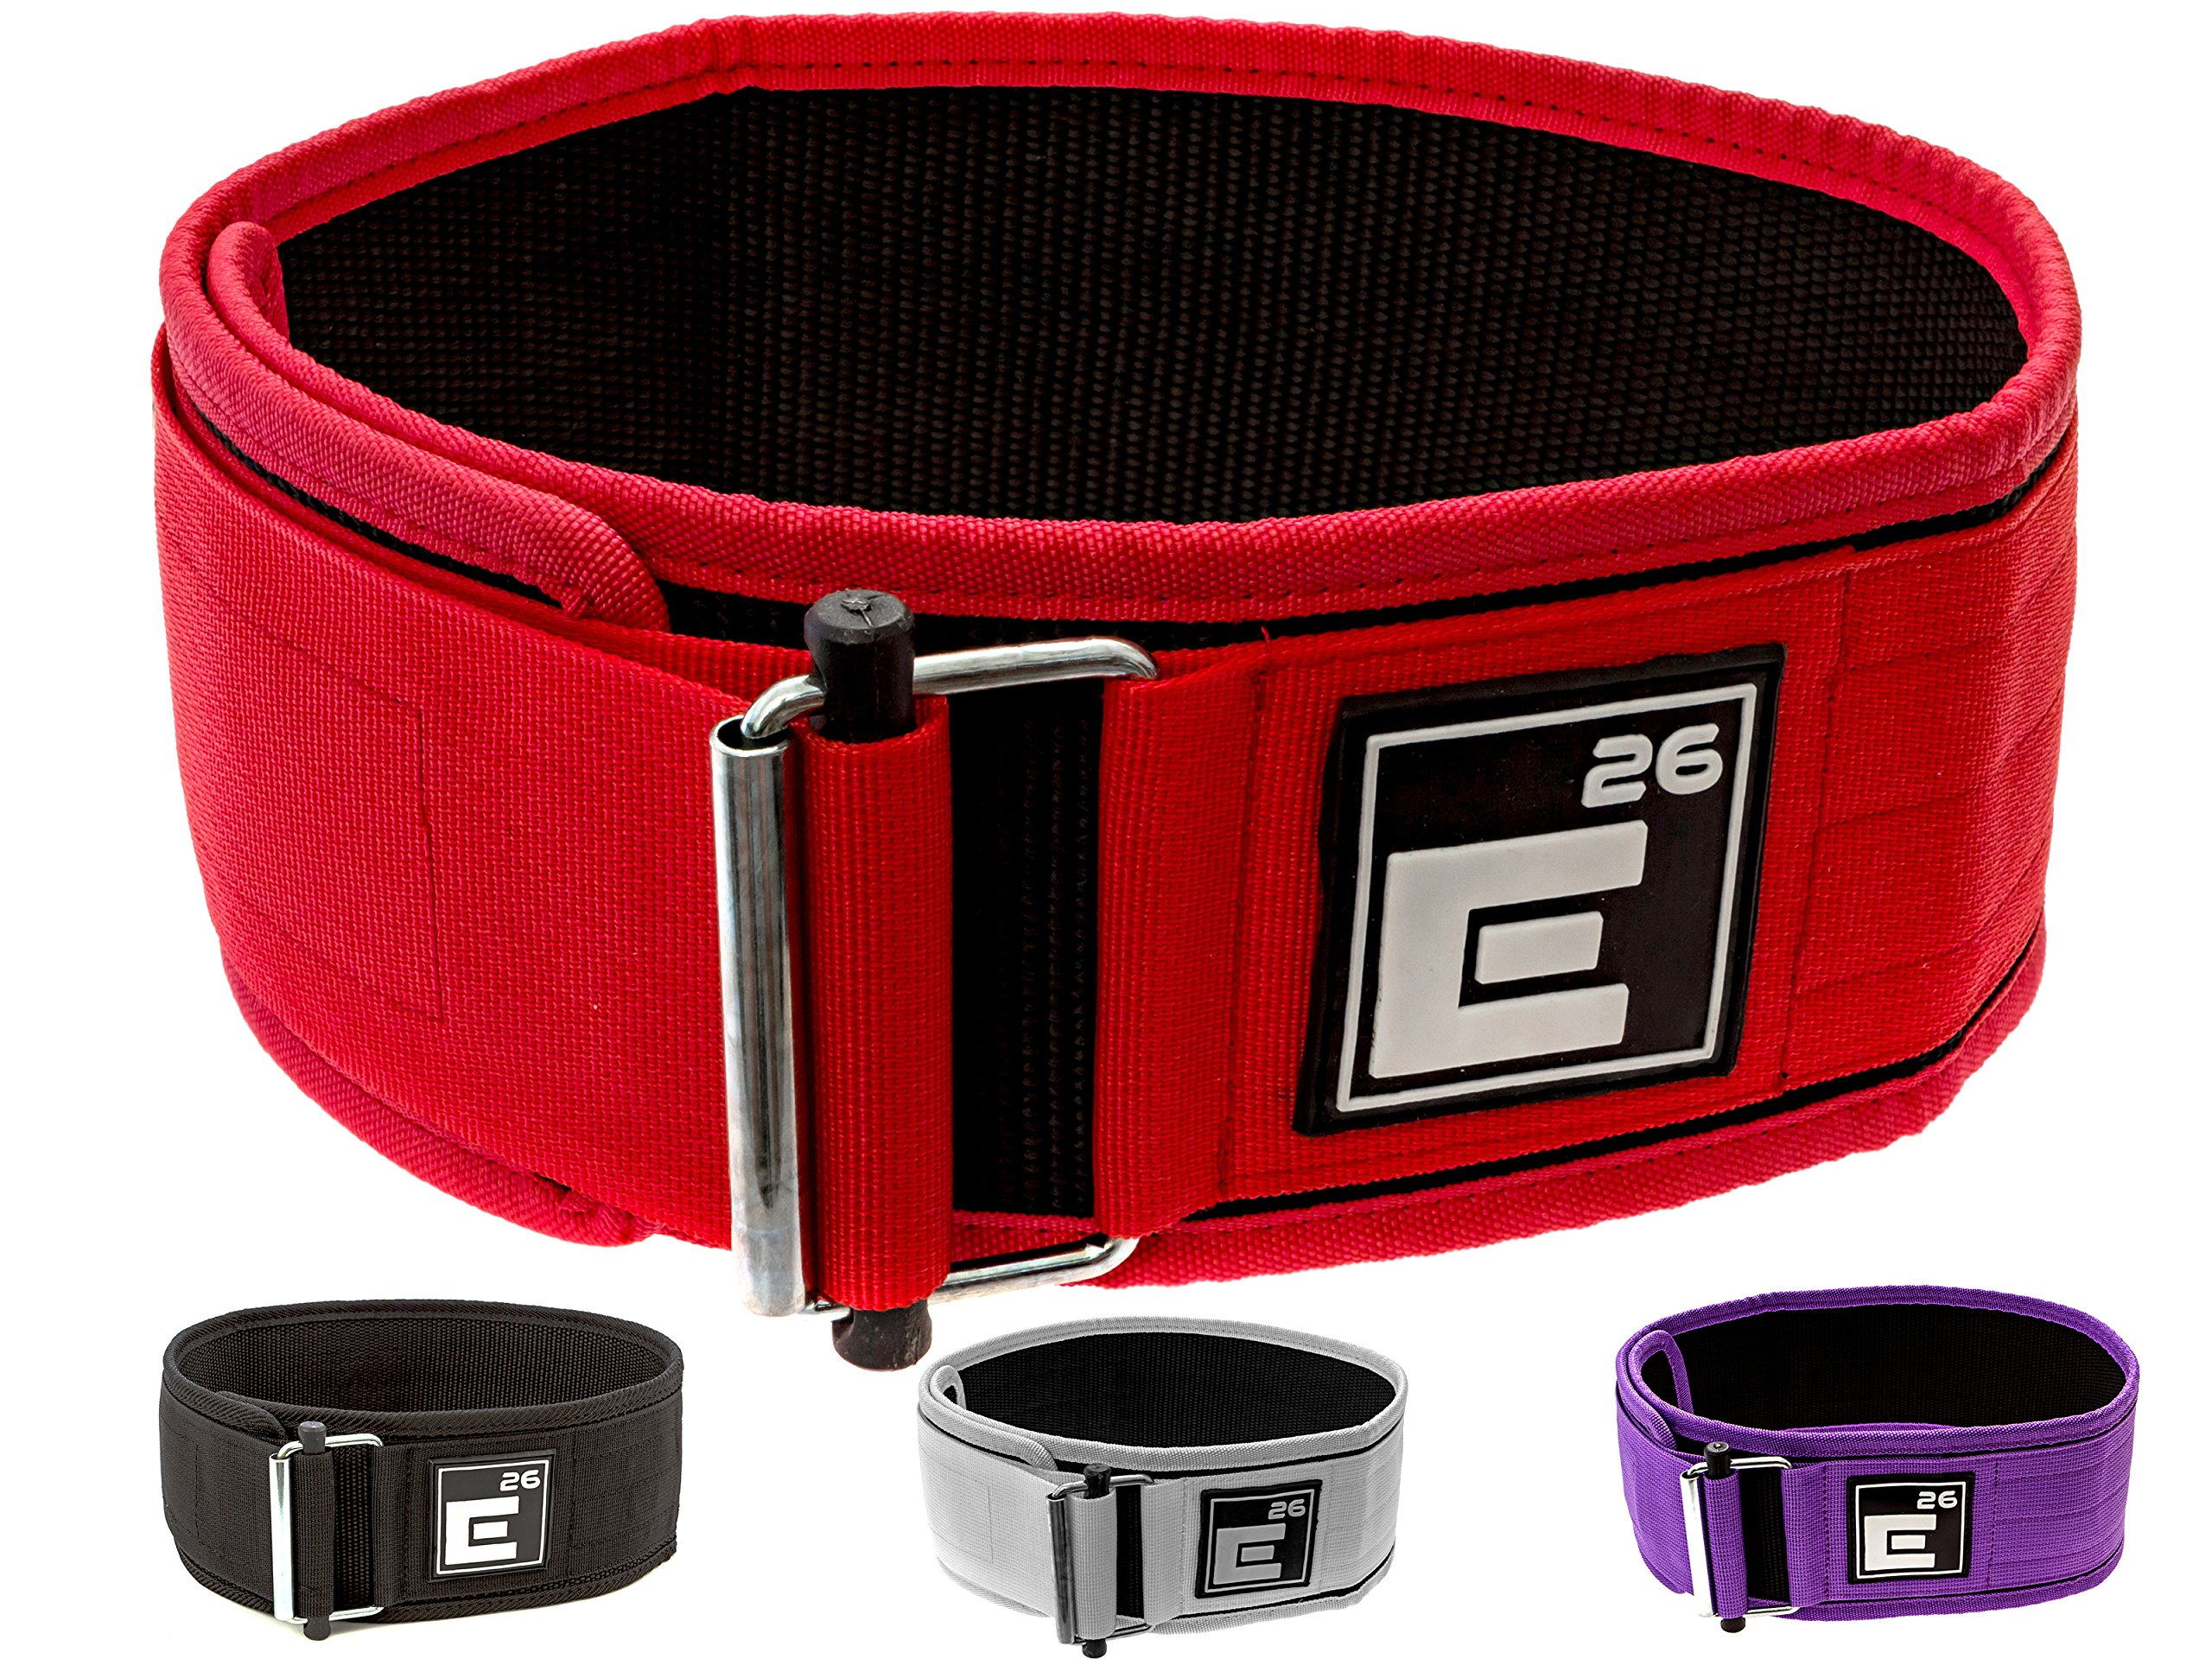 Self-Locking Weight Lifting Belt | Premium Weightlifting Belt for Serious Crossfit, Power Lifting, and Olympic Lifting Athletes (26'' - 30'', Around Navel, Small, Red)